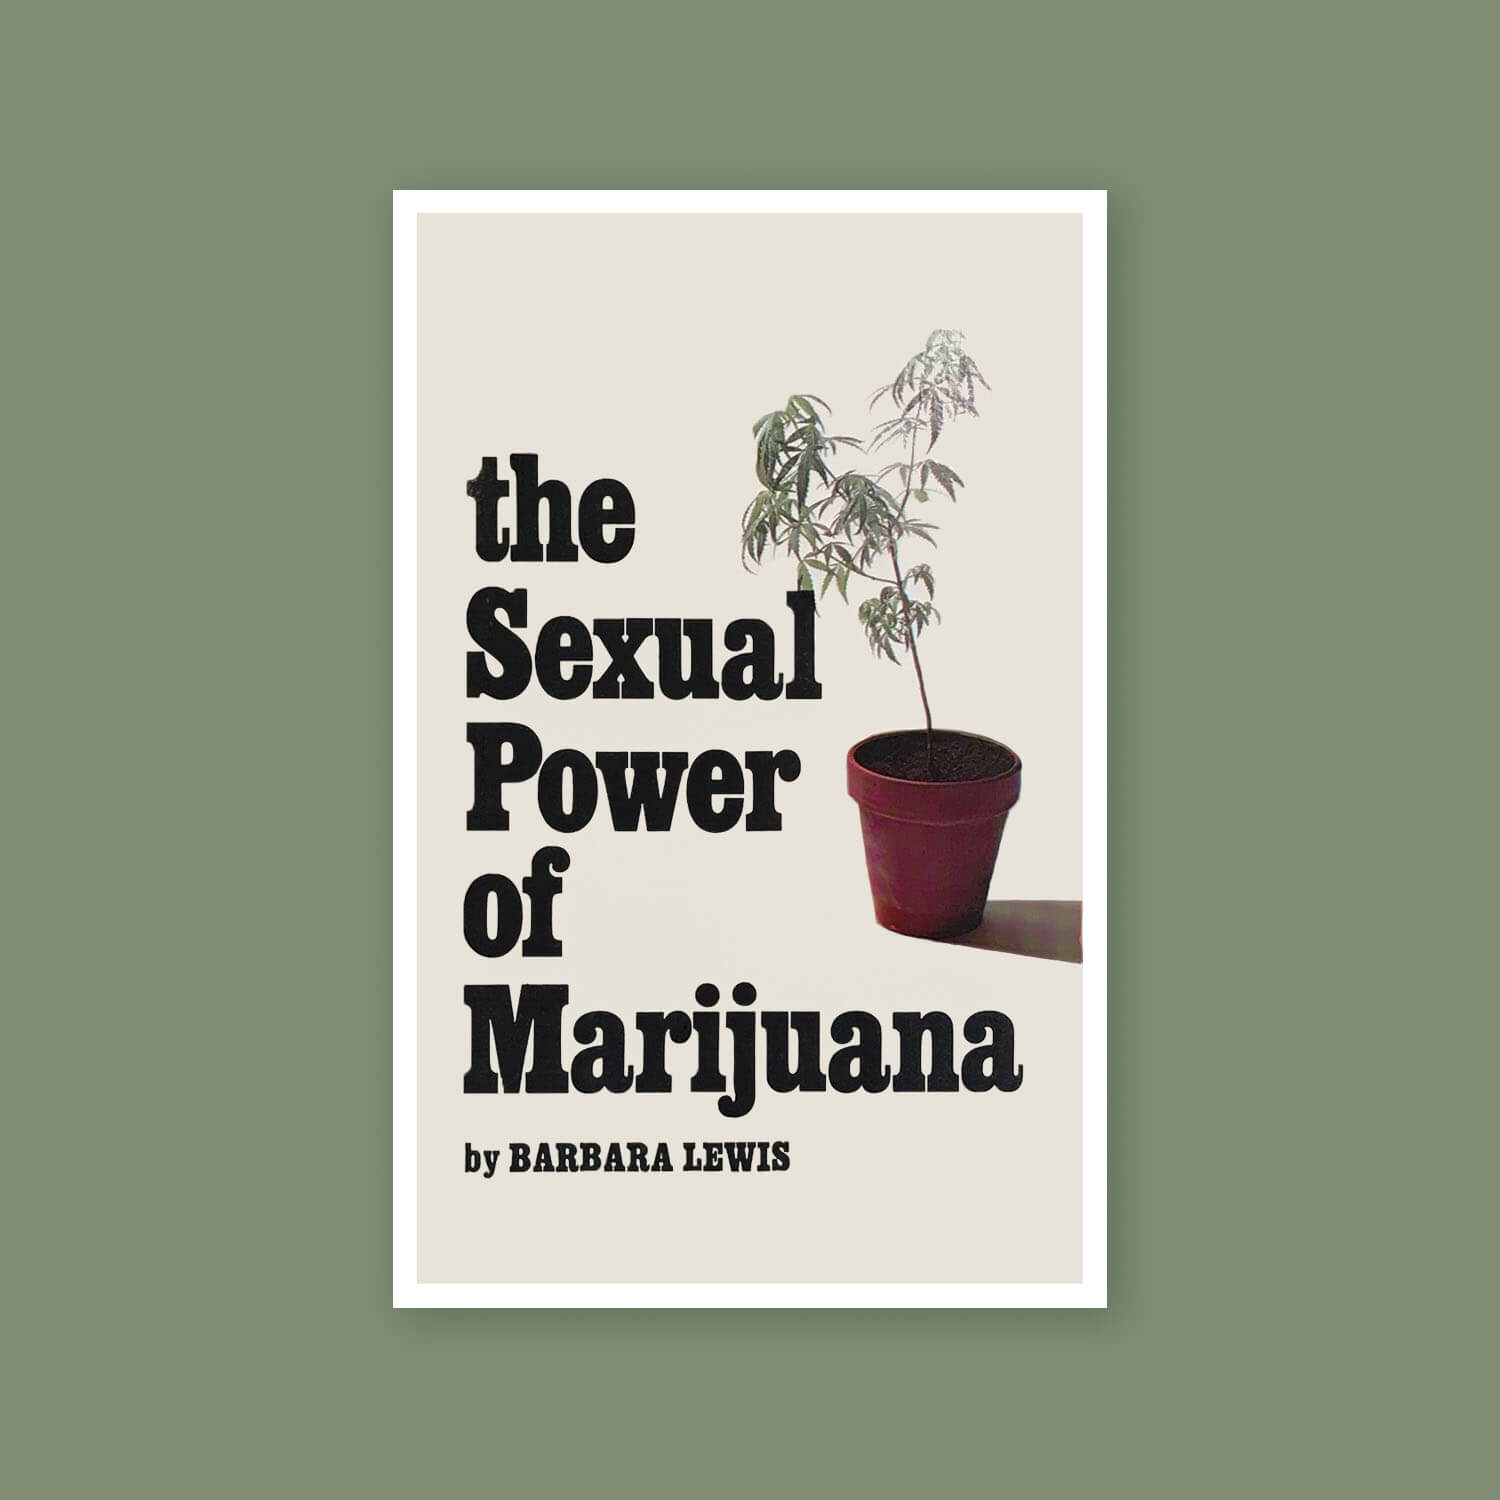 The Sexual Power of Marijuana